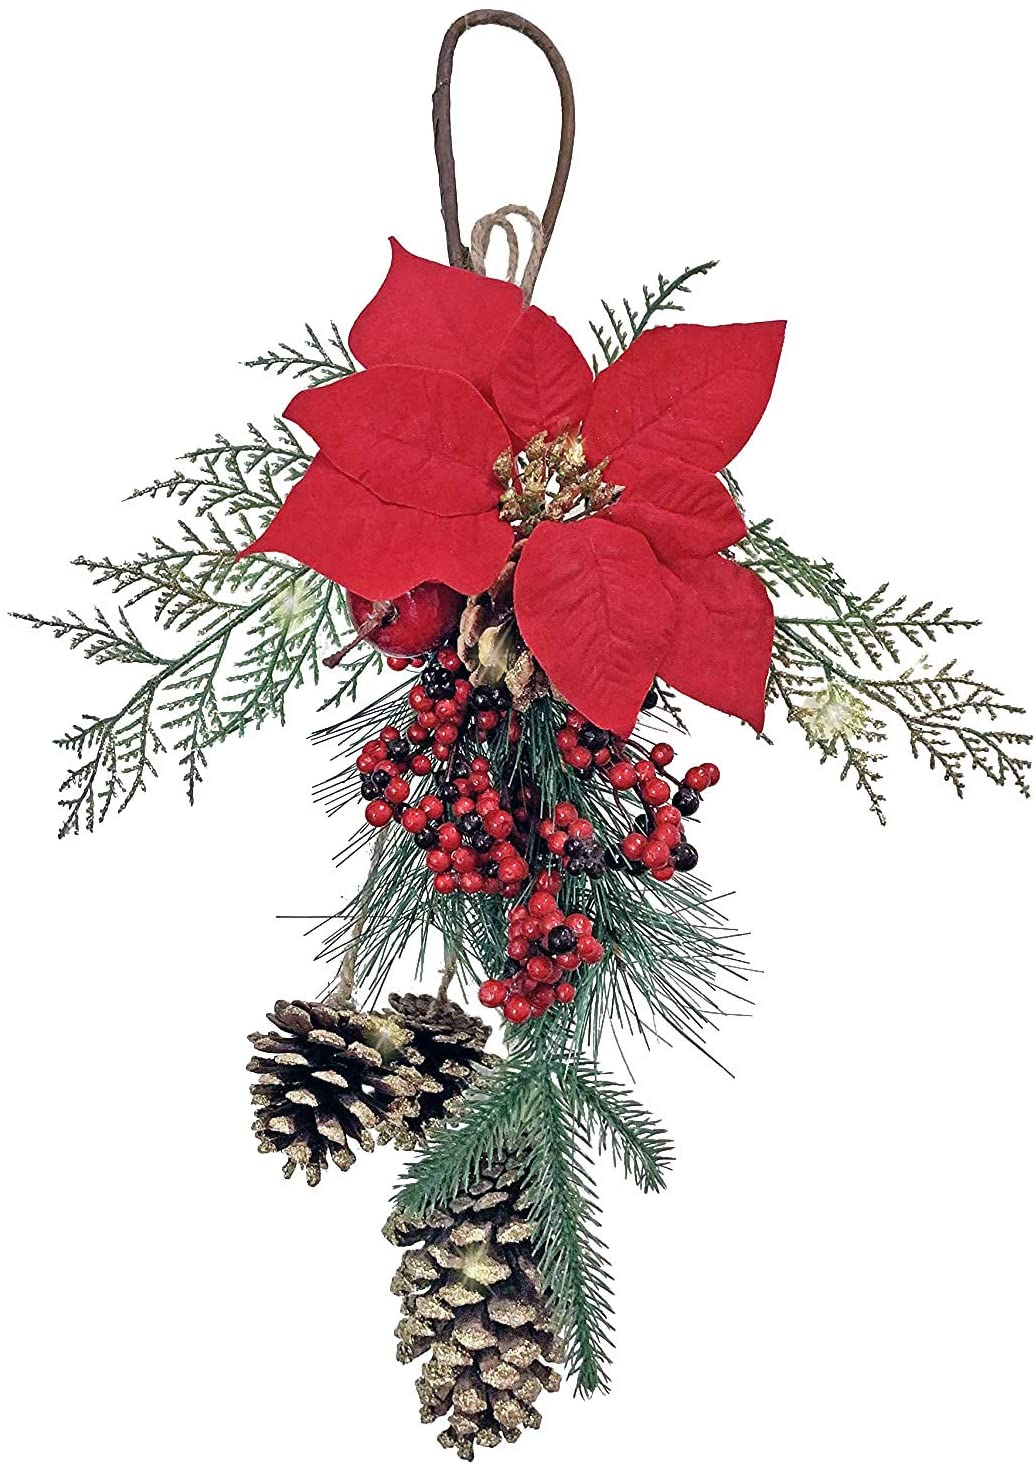 TenWaterloo 18 Inch Artificial Cedar and Pine Christmas Door Hanger with Golden Pine Cones, Faux Berries and Poinsettia Bloom